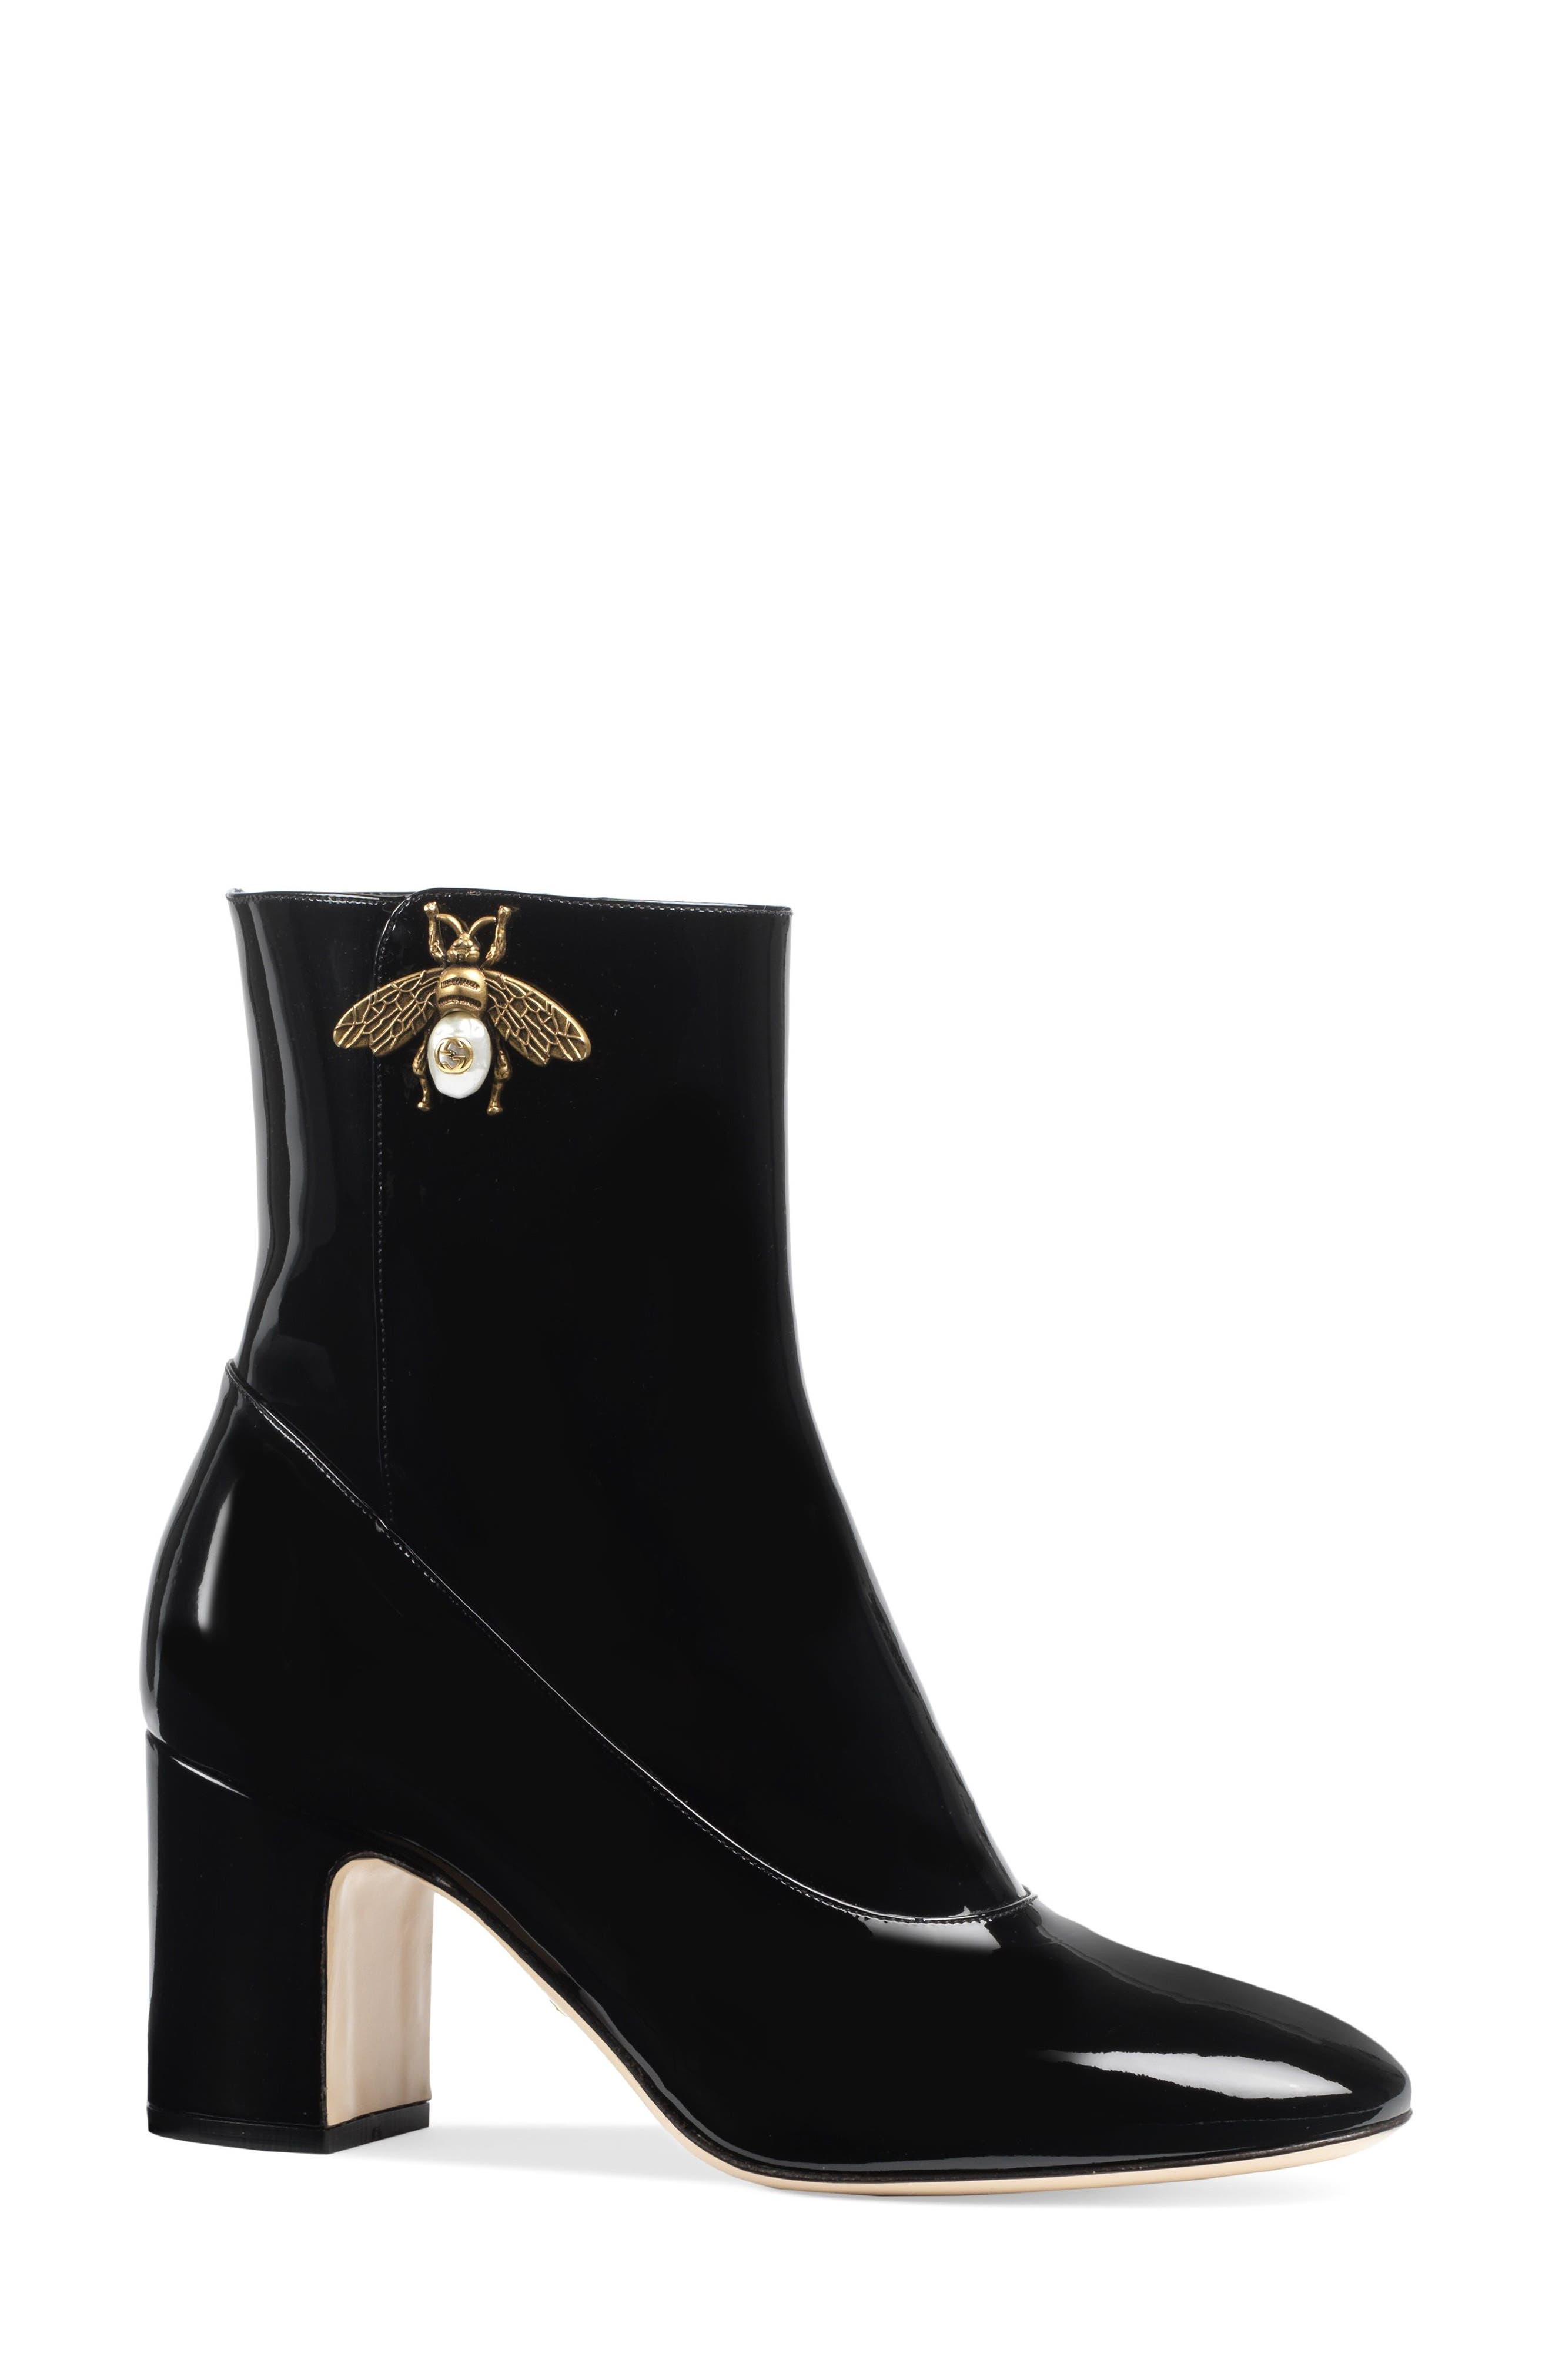 Main Image - Gucci Lois Bee Bootie (Women)